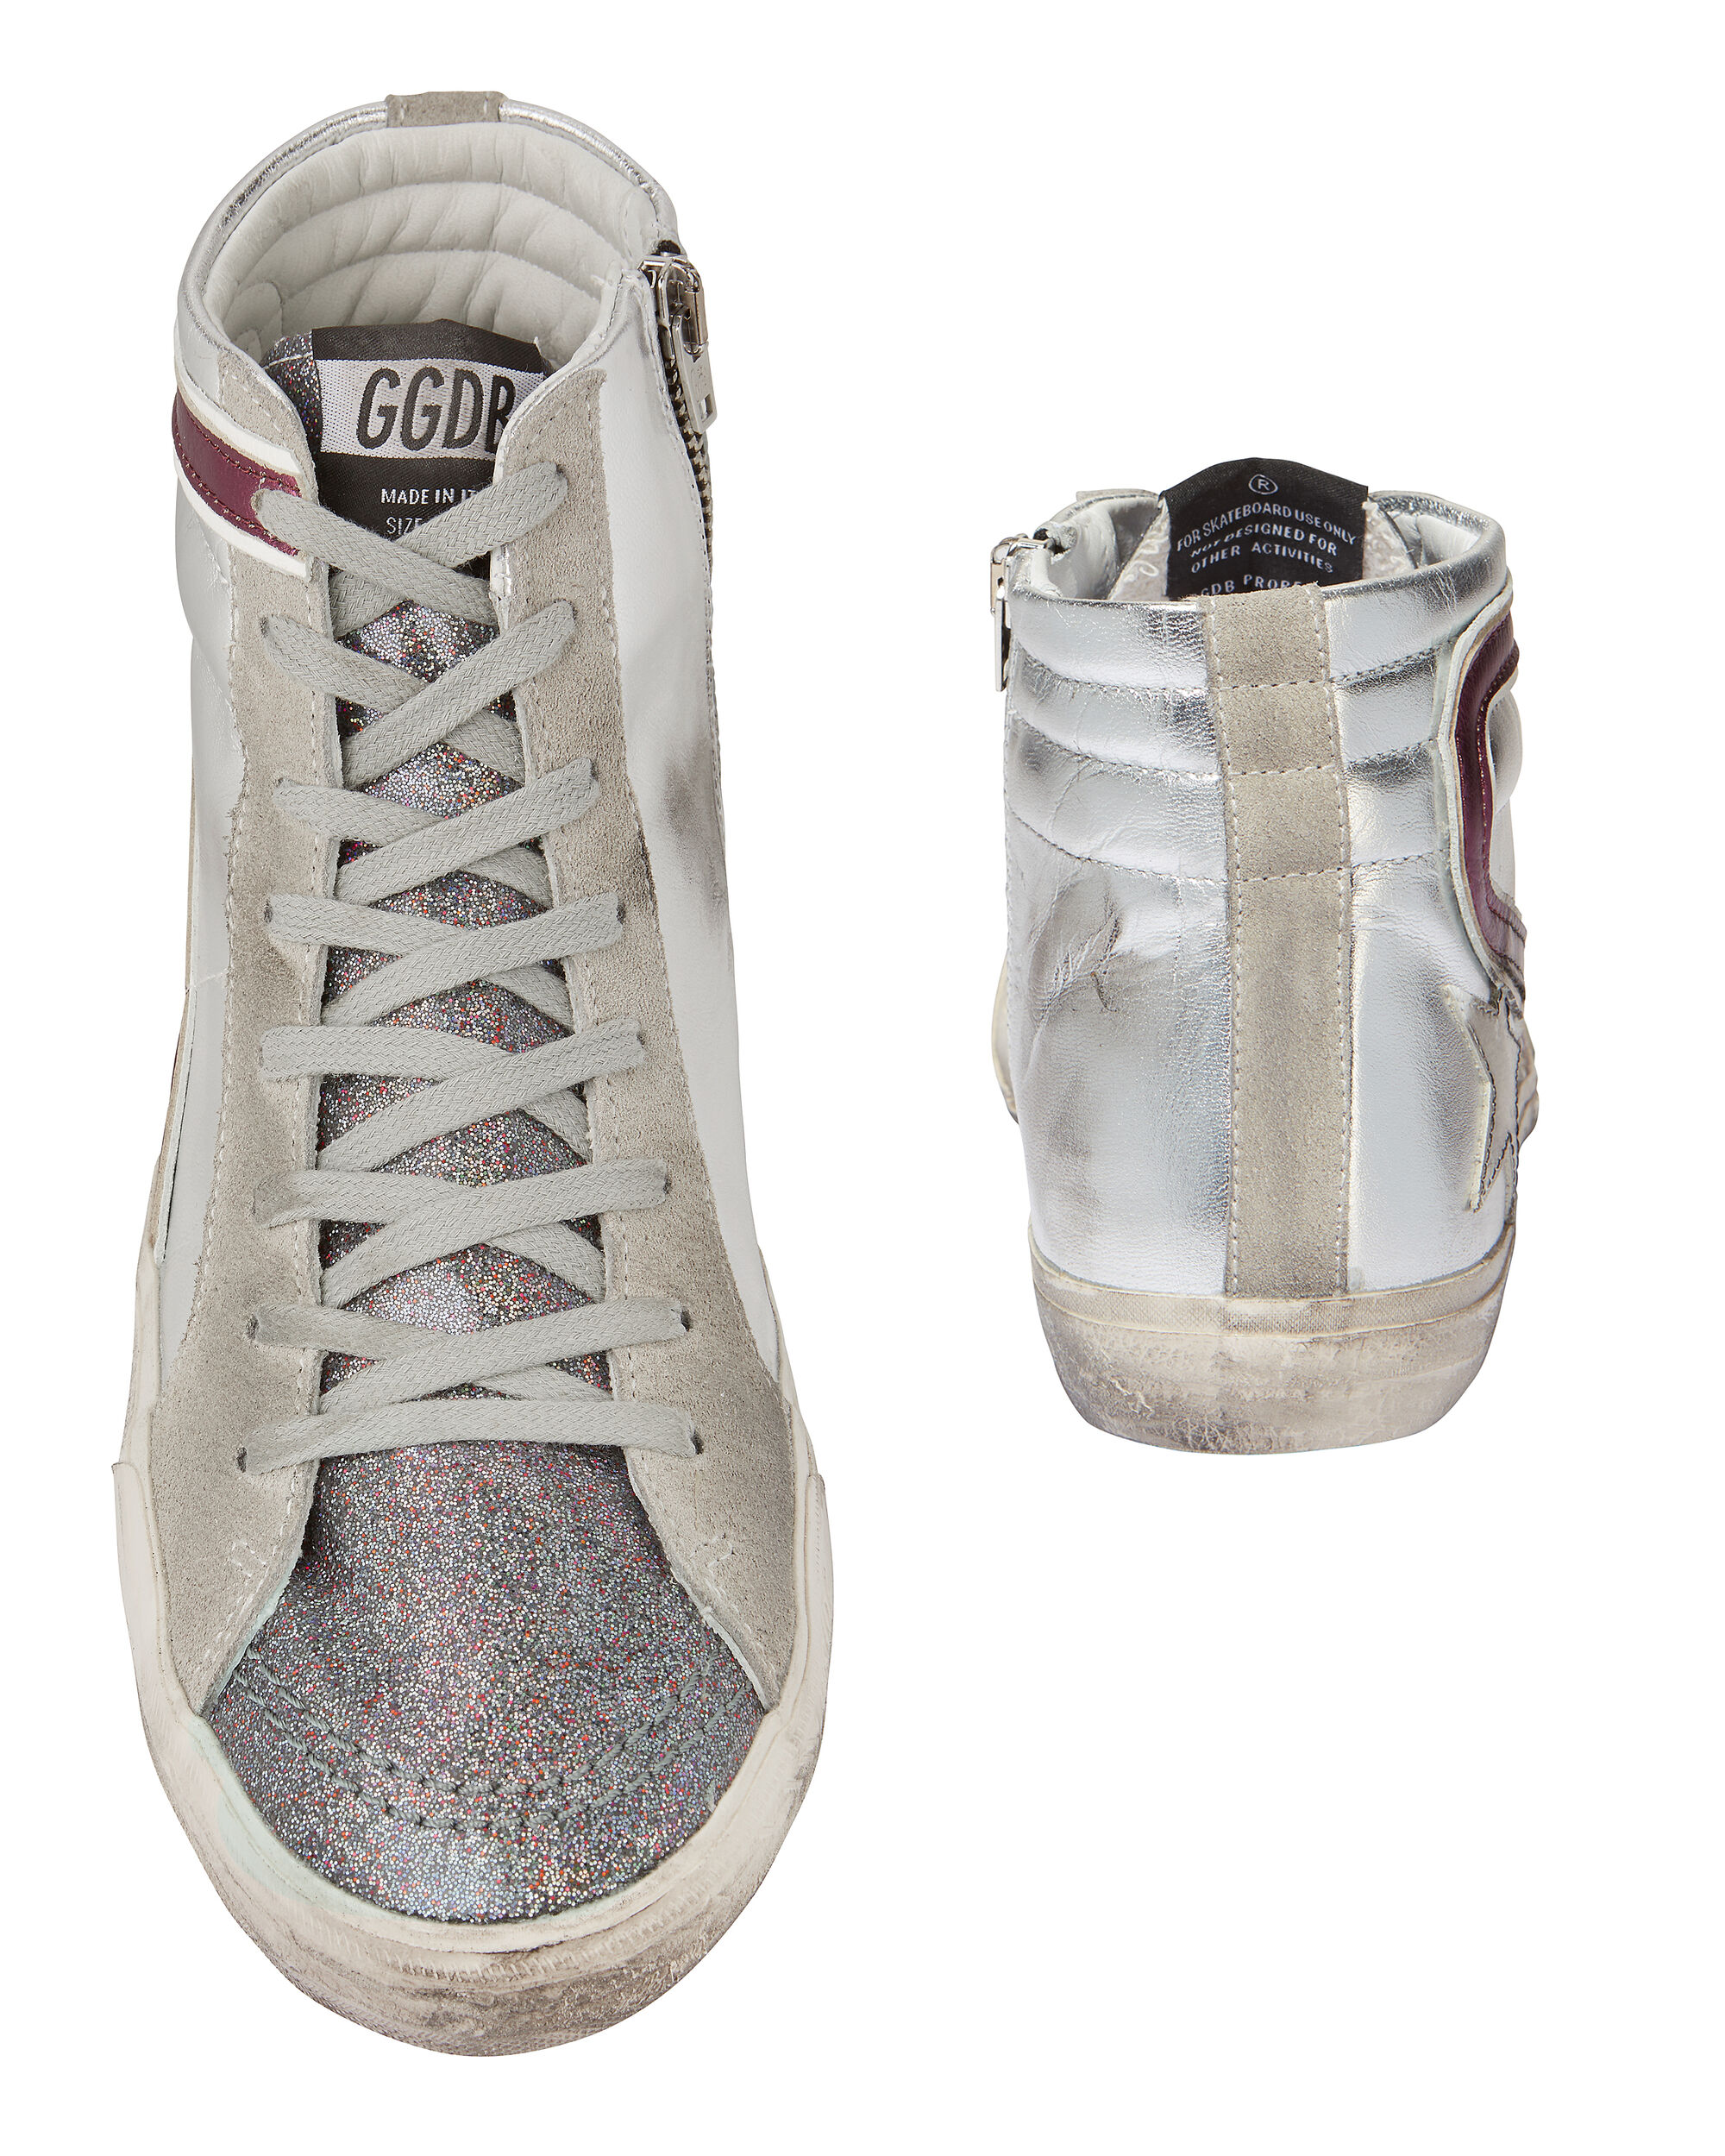 Glitter Tongue High-Top Leather Sneakers, METALLIC, hi-res